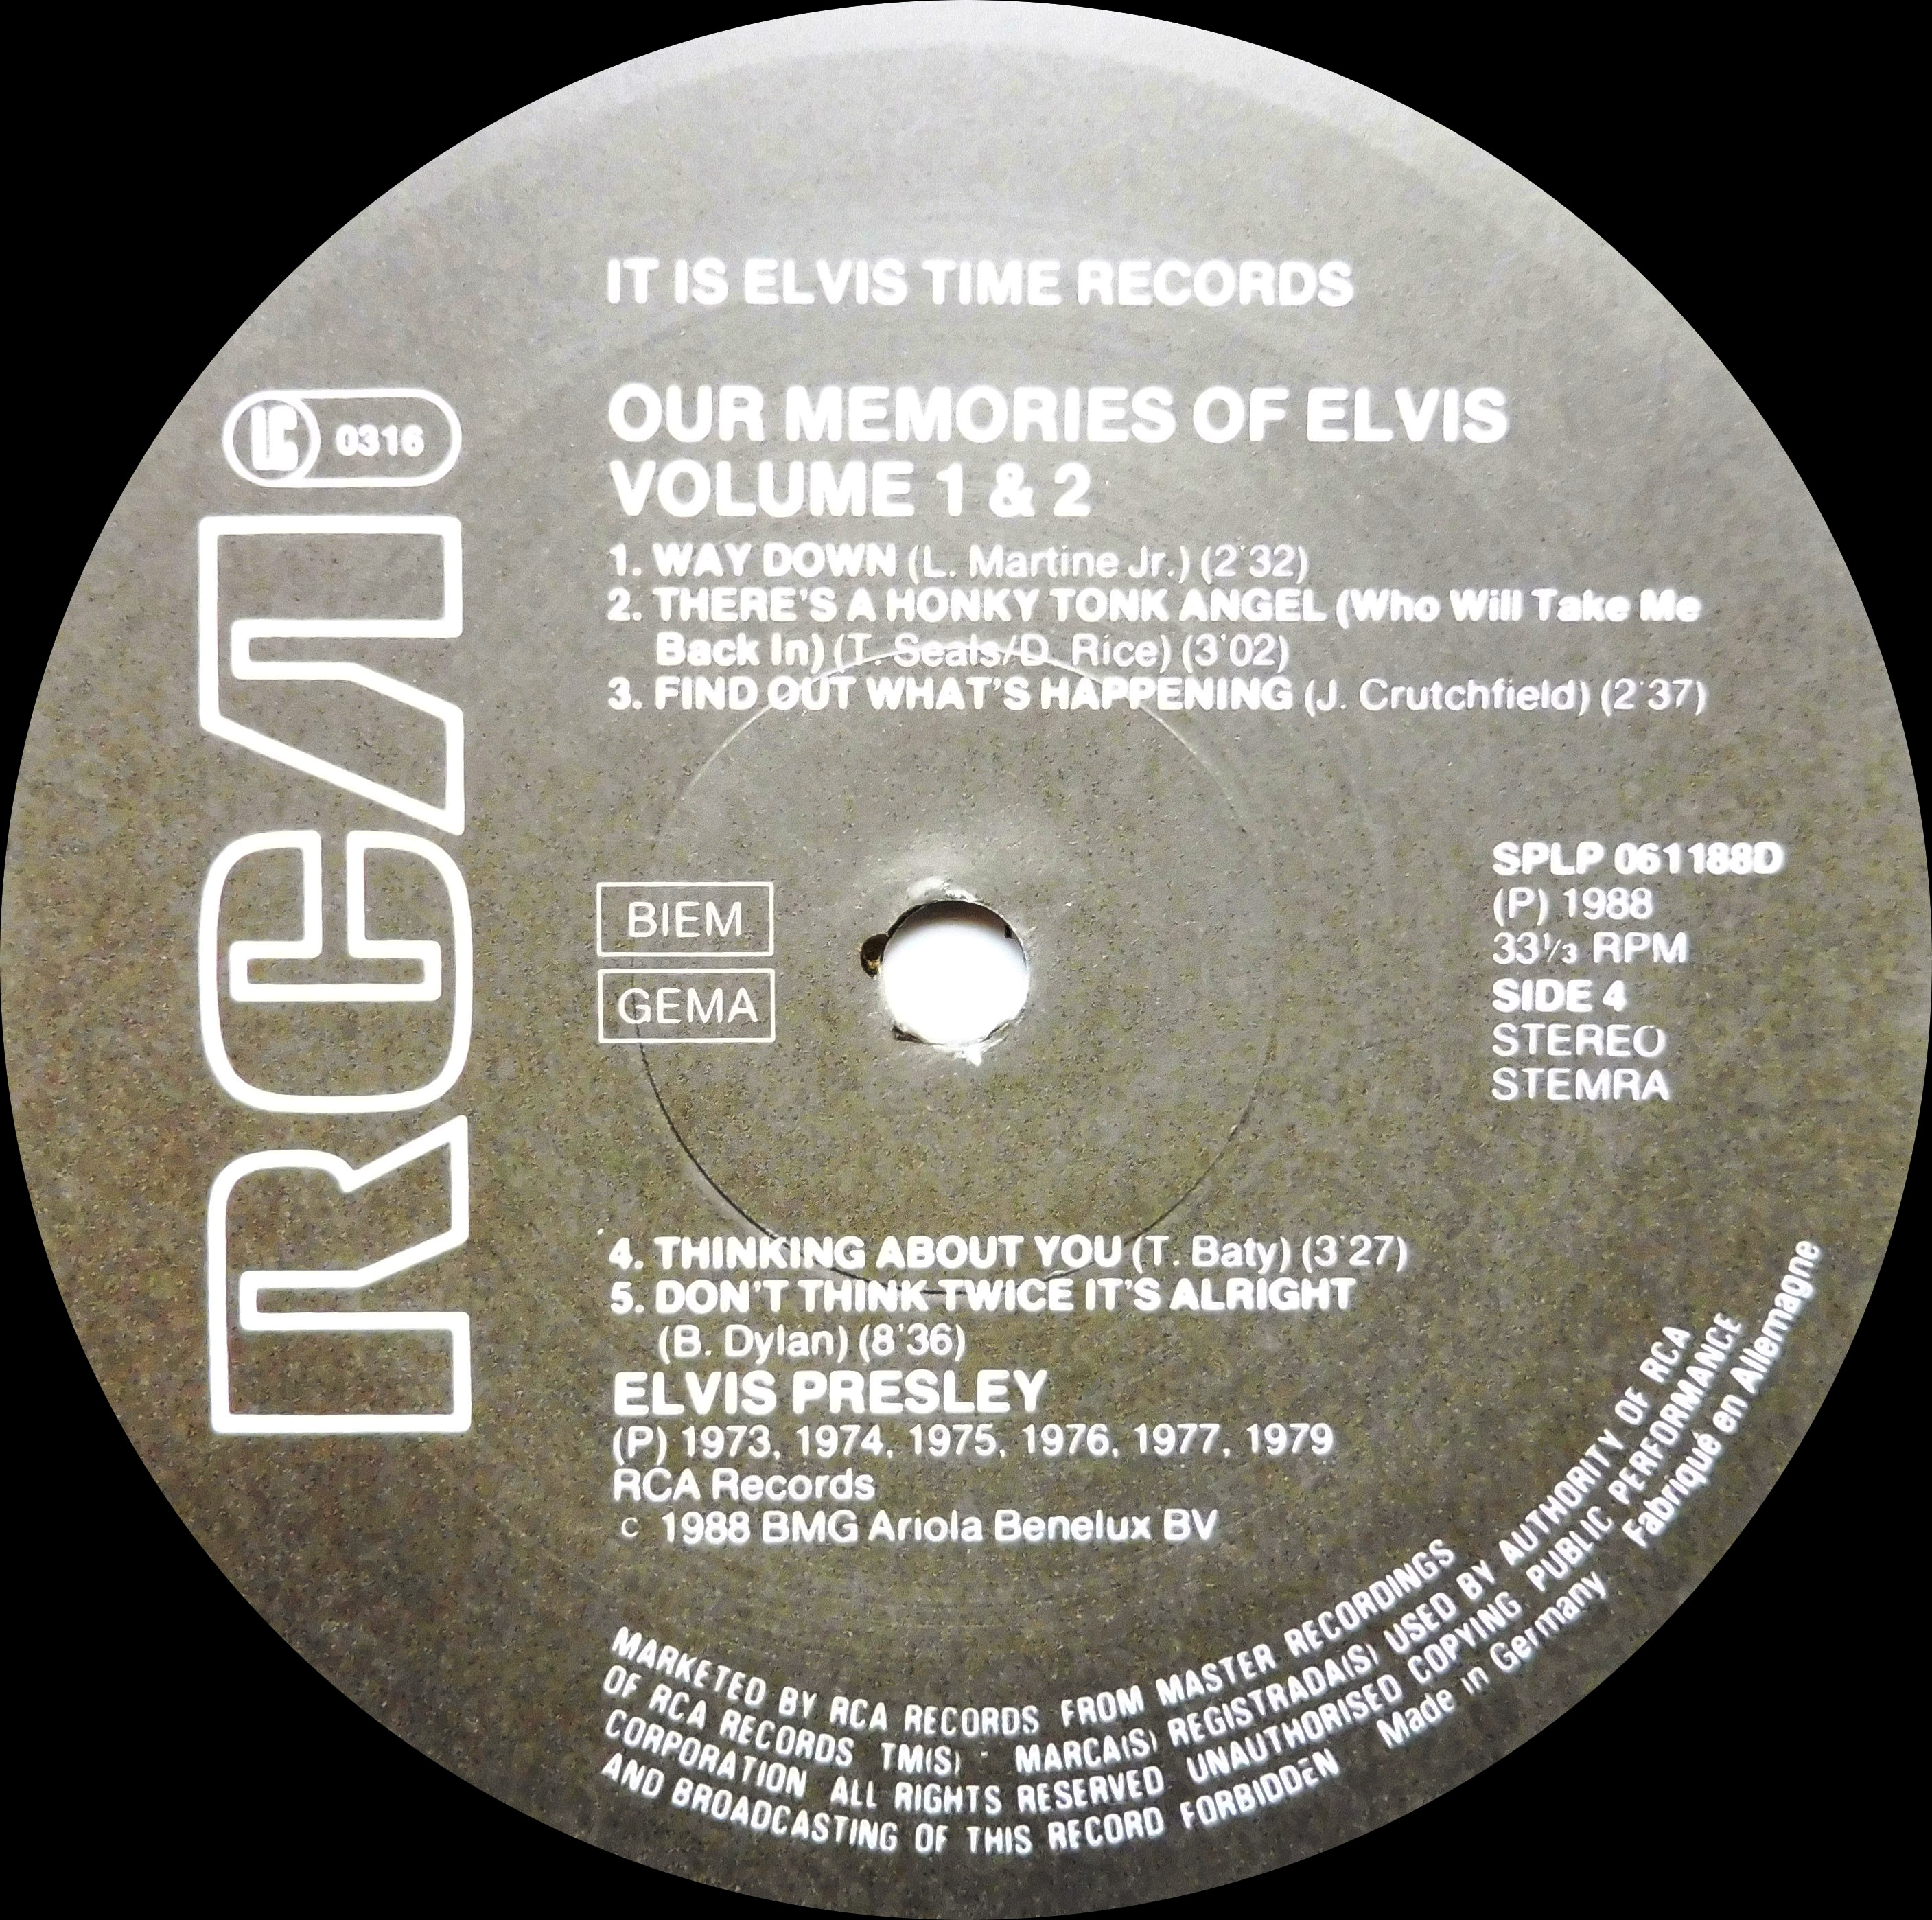 OUR MEMORIES OF ELVIS - Volume 1 & 2 Omoevol1und2nlside4emjfj